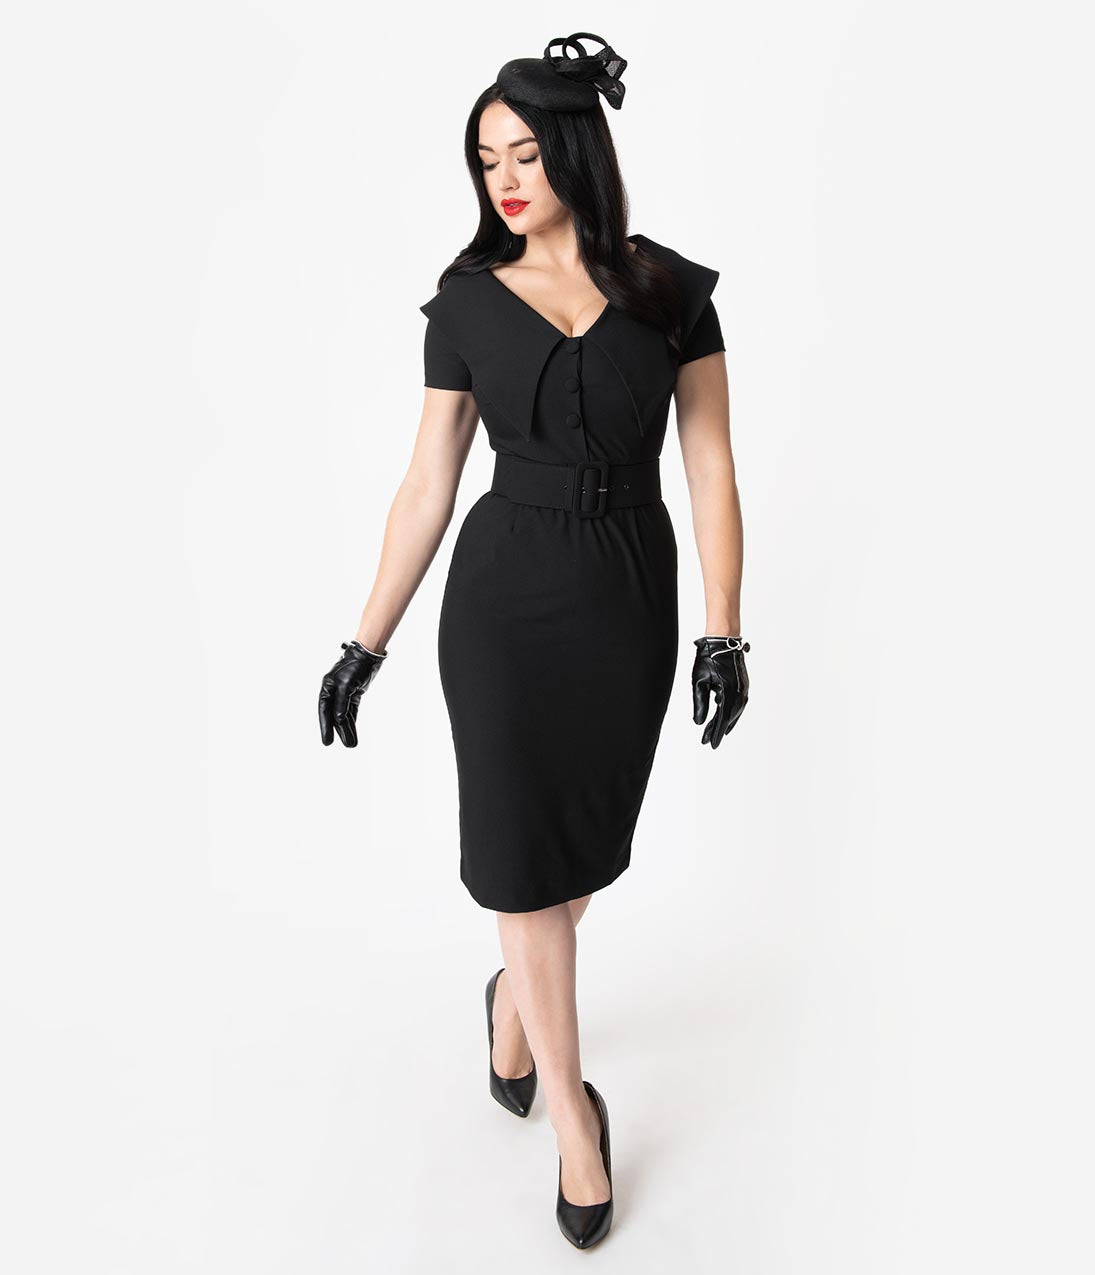 1950s Fashion History: Women's Clothing Vintage Diva 1950S Black Wide Collar Belted Joan Pencil Dress $132.00 AT vintagedancer.com